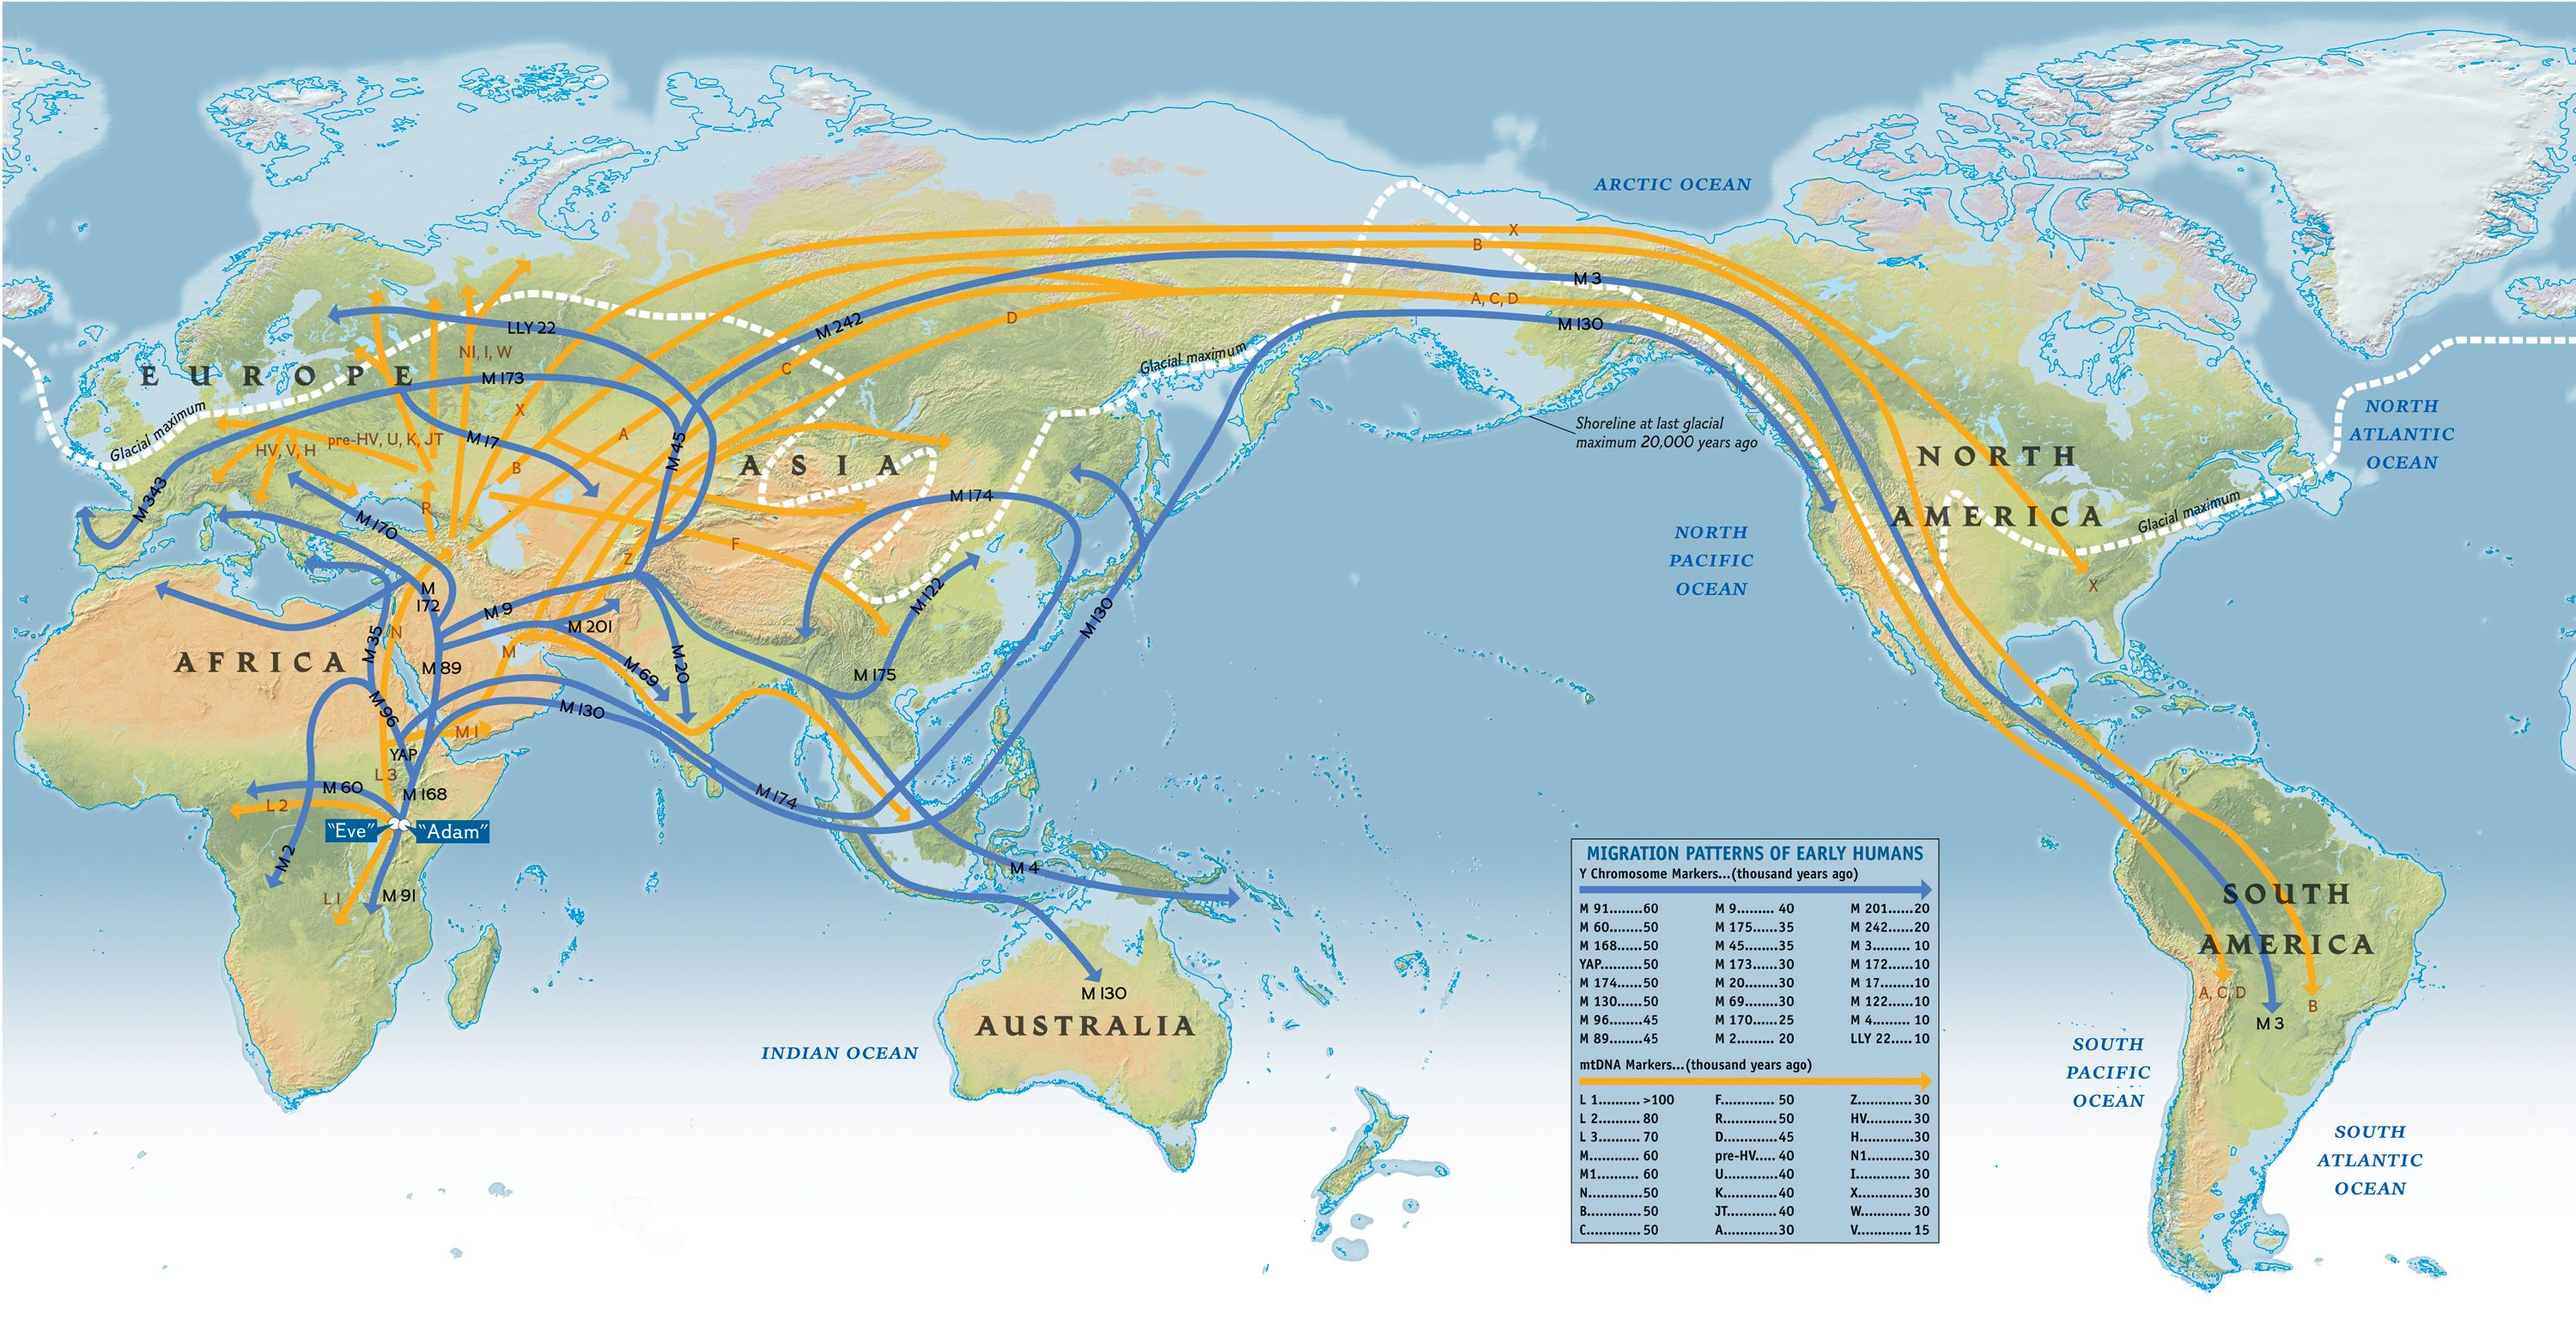 migration patterns of early humans cosmolearning anthropology